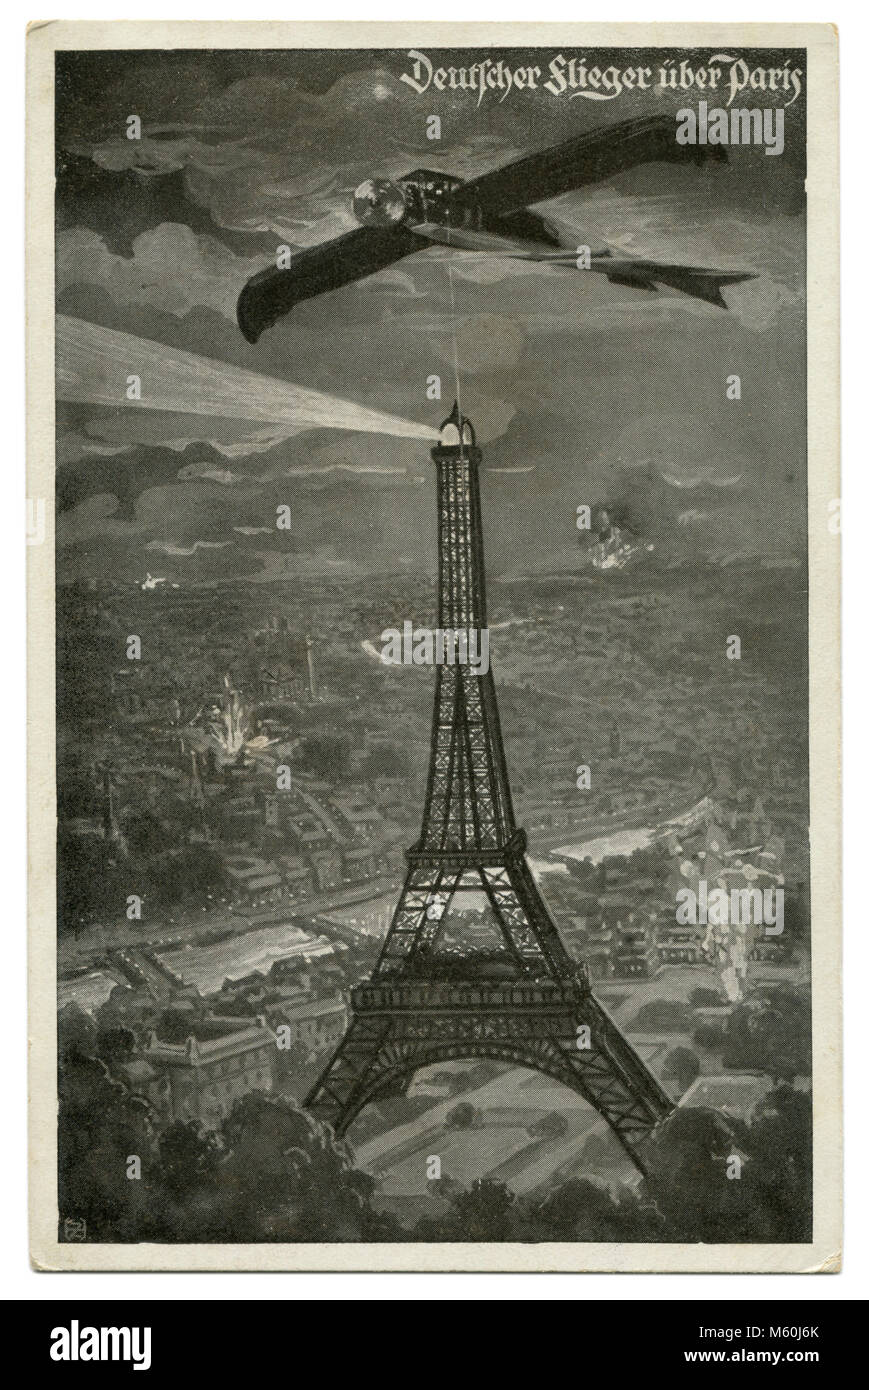 Old German postcard military airplane Taube over Paris, the Eiffel tower on the background of explosions and fires. Stock Photo